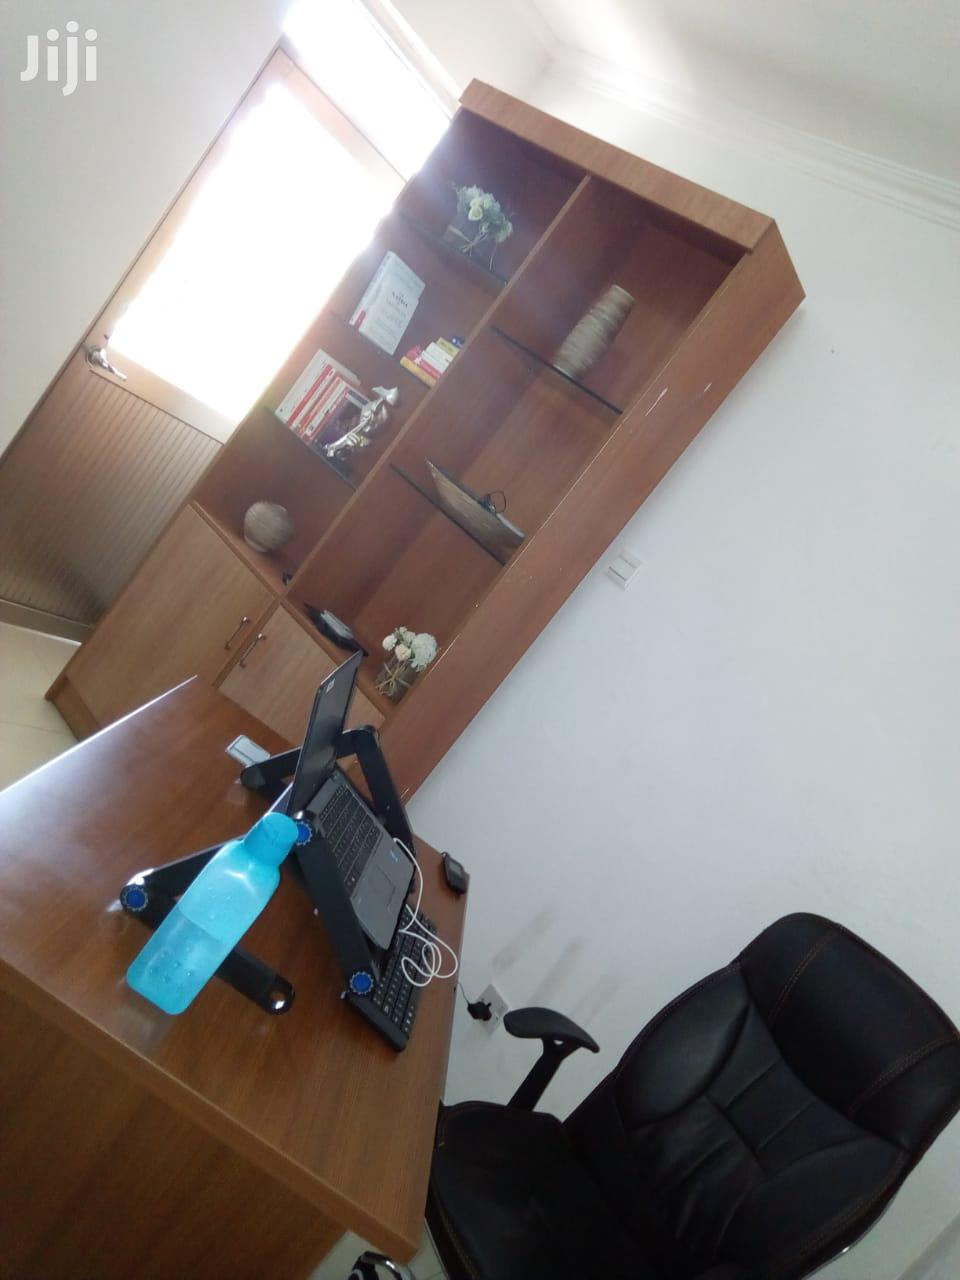 To Let Office Fully Furnished Apartment at Kilimani Nairobi   Commercial Property For Rent for sale in Kilimani, Nairobi, Kenya